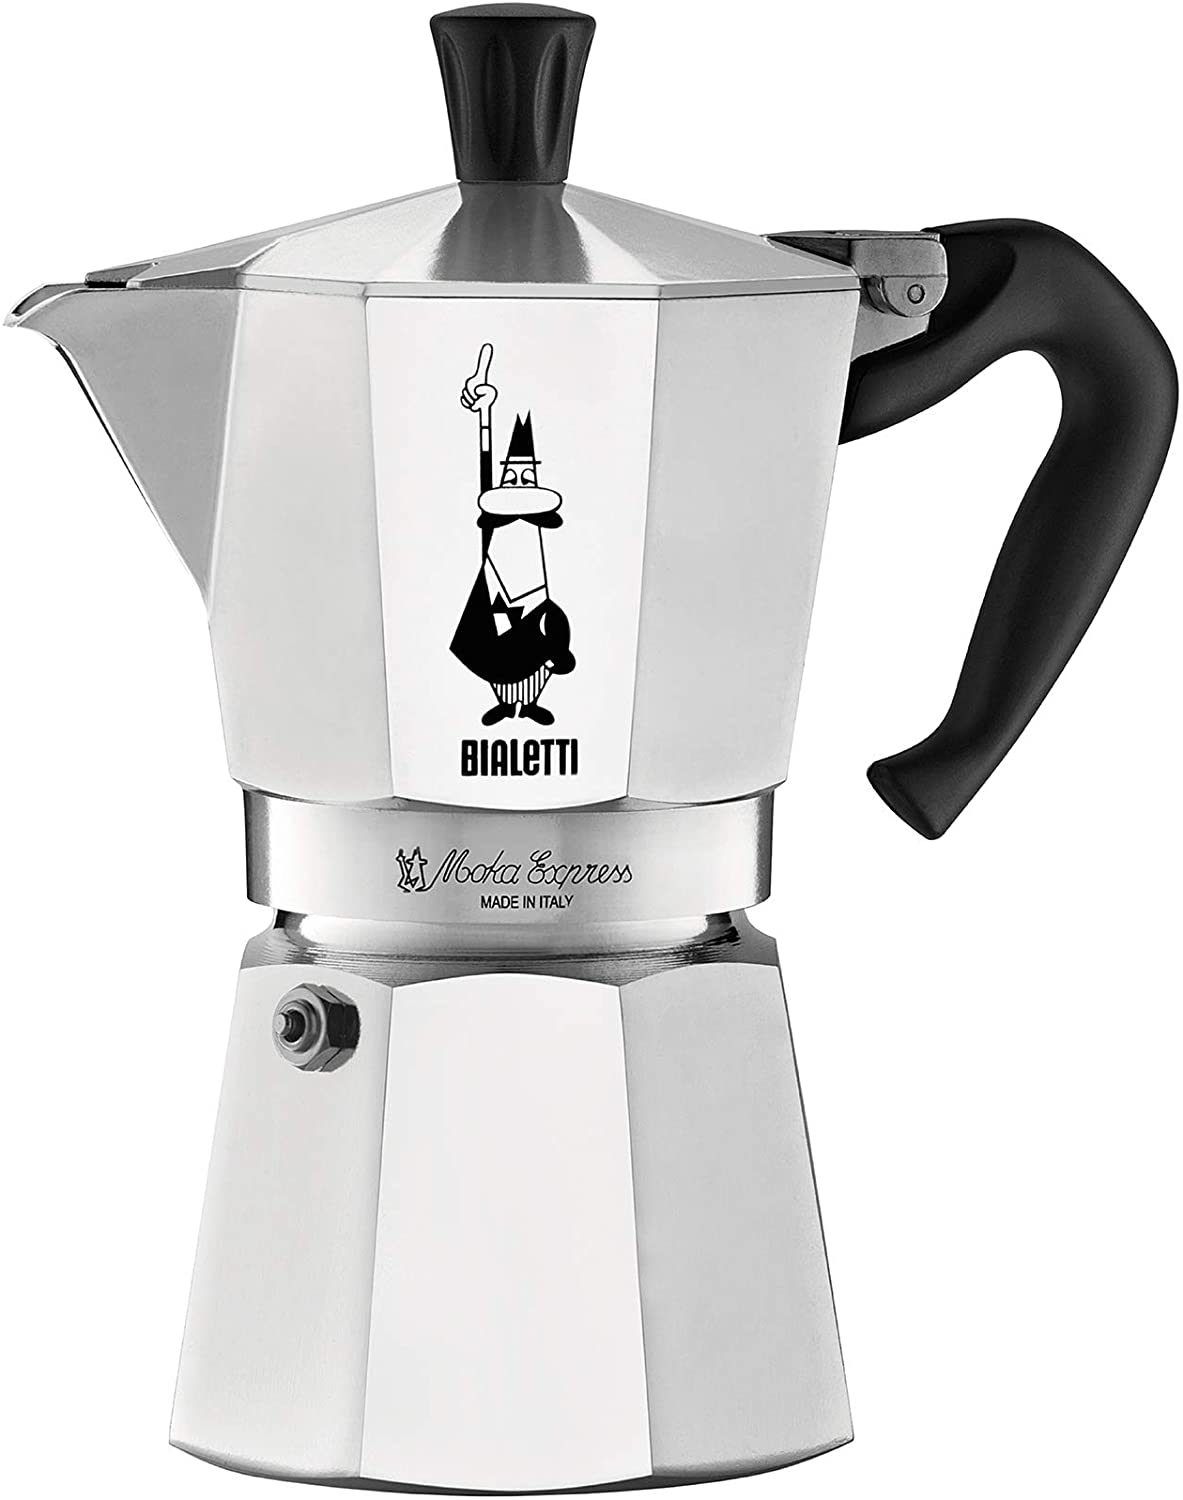 Bialetti Express 6-Cup Moka Pot in silver and aluminum